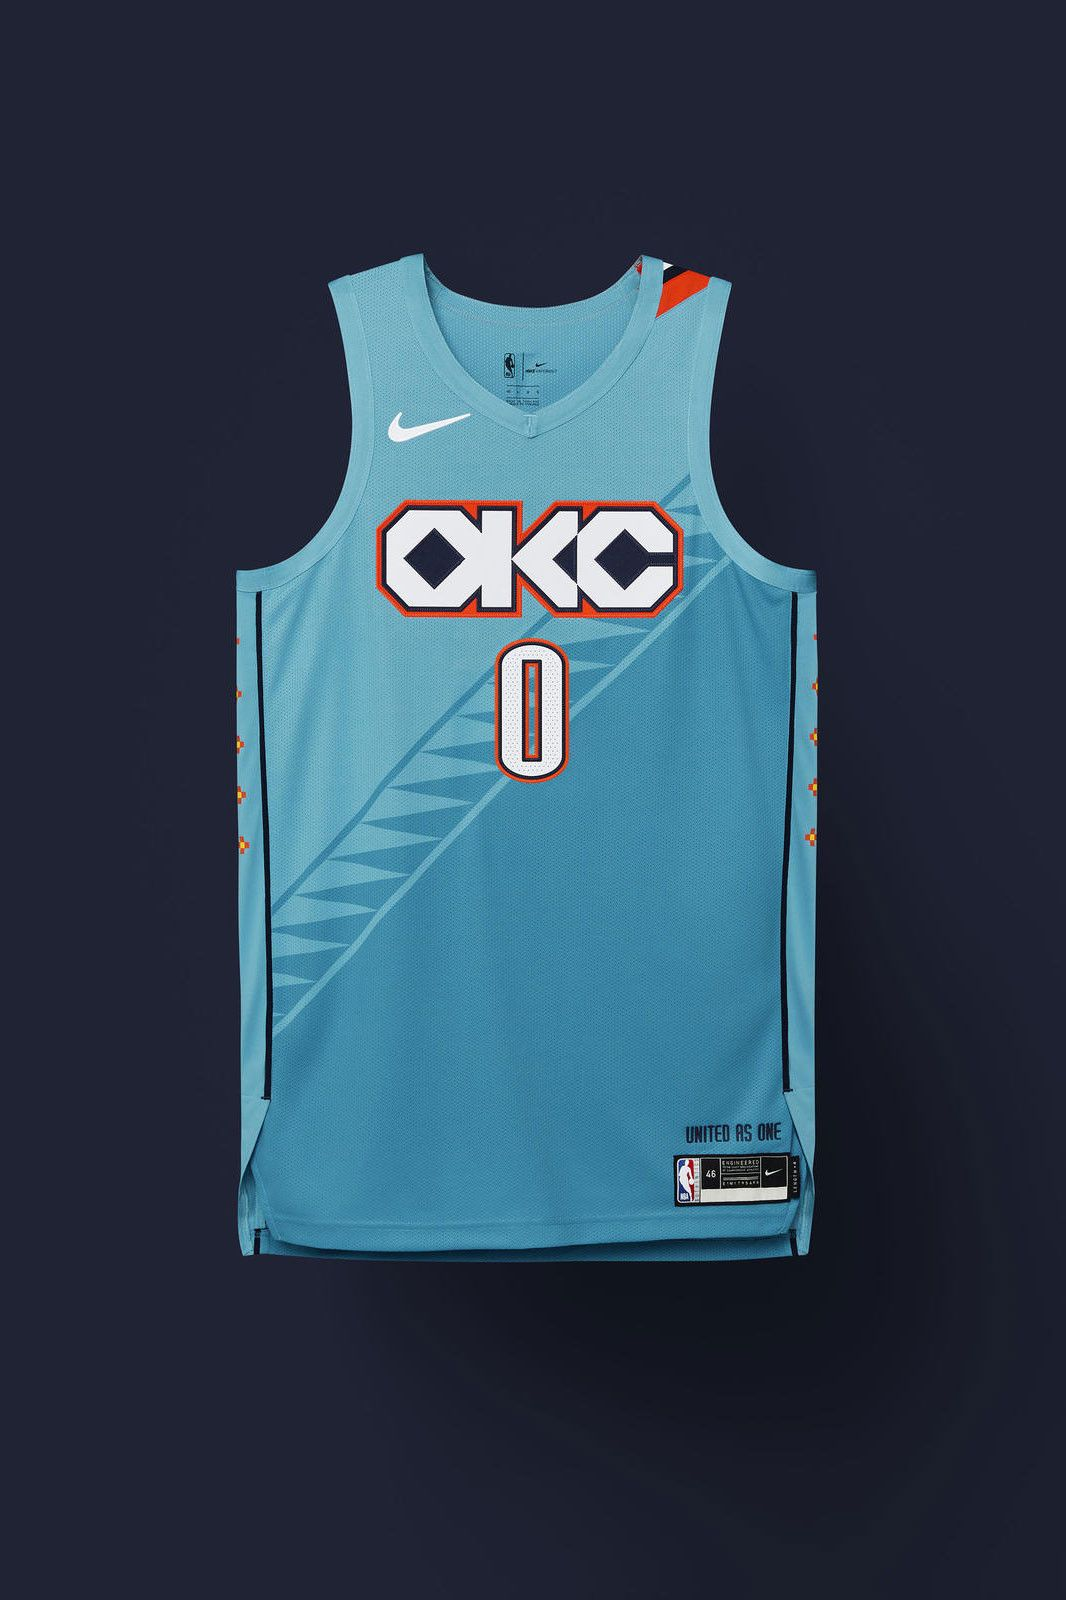 56c1680dd nike nba city edition uniforms 2018 2019 minnesota timberwolves chicago  bulls orlando magic charlotte hornets brooklyn nets philadelphia 76ers  denver ...